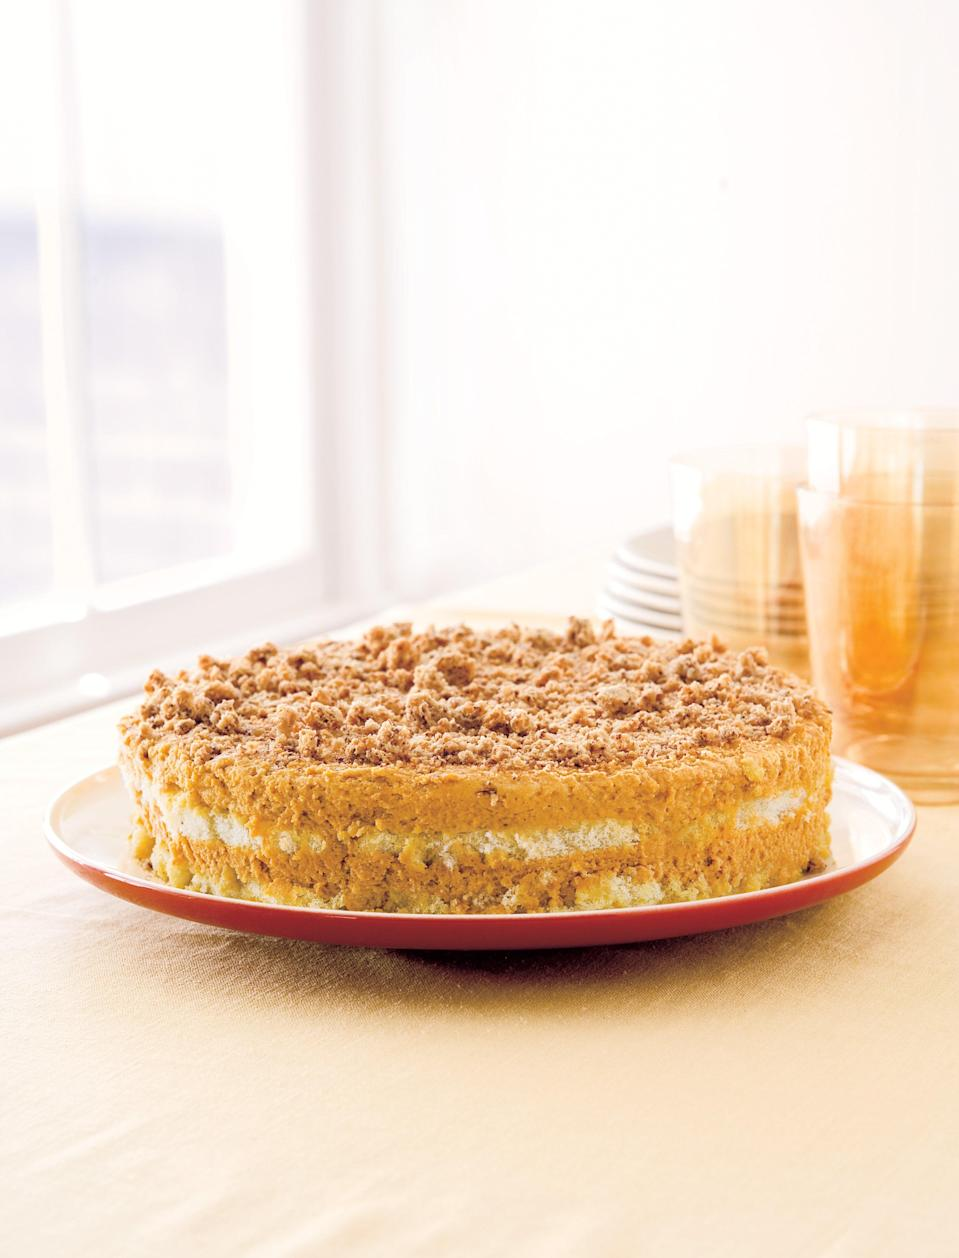 """Whip canned pumpkin with mascarpone, cream, and spices, then layer with rum-soaked lady fingers and crushed amaretti cookies for an easy dessert with a lot of flavor. <a href=""""https://www.epicurious.com/recipes/food/views/super-simple-pumpkin-tiramisu-236541?mbid=synd_yahoo_rss"""" rel=""""nofollow noopener"""" target=""""_blank"""" data-ylk=""""slk:See recipe."""" class=""""link rapid-noclick-resp"""">See recipe.</a>"""